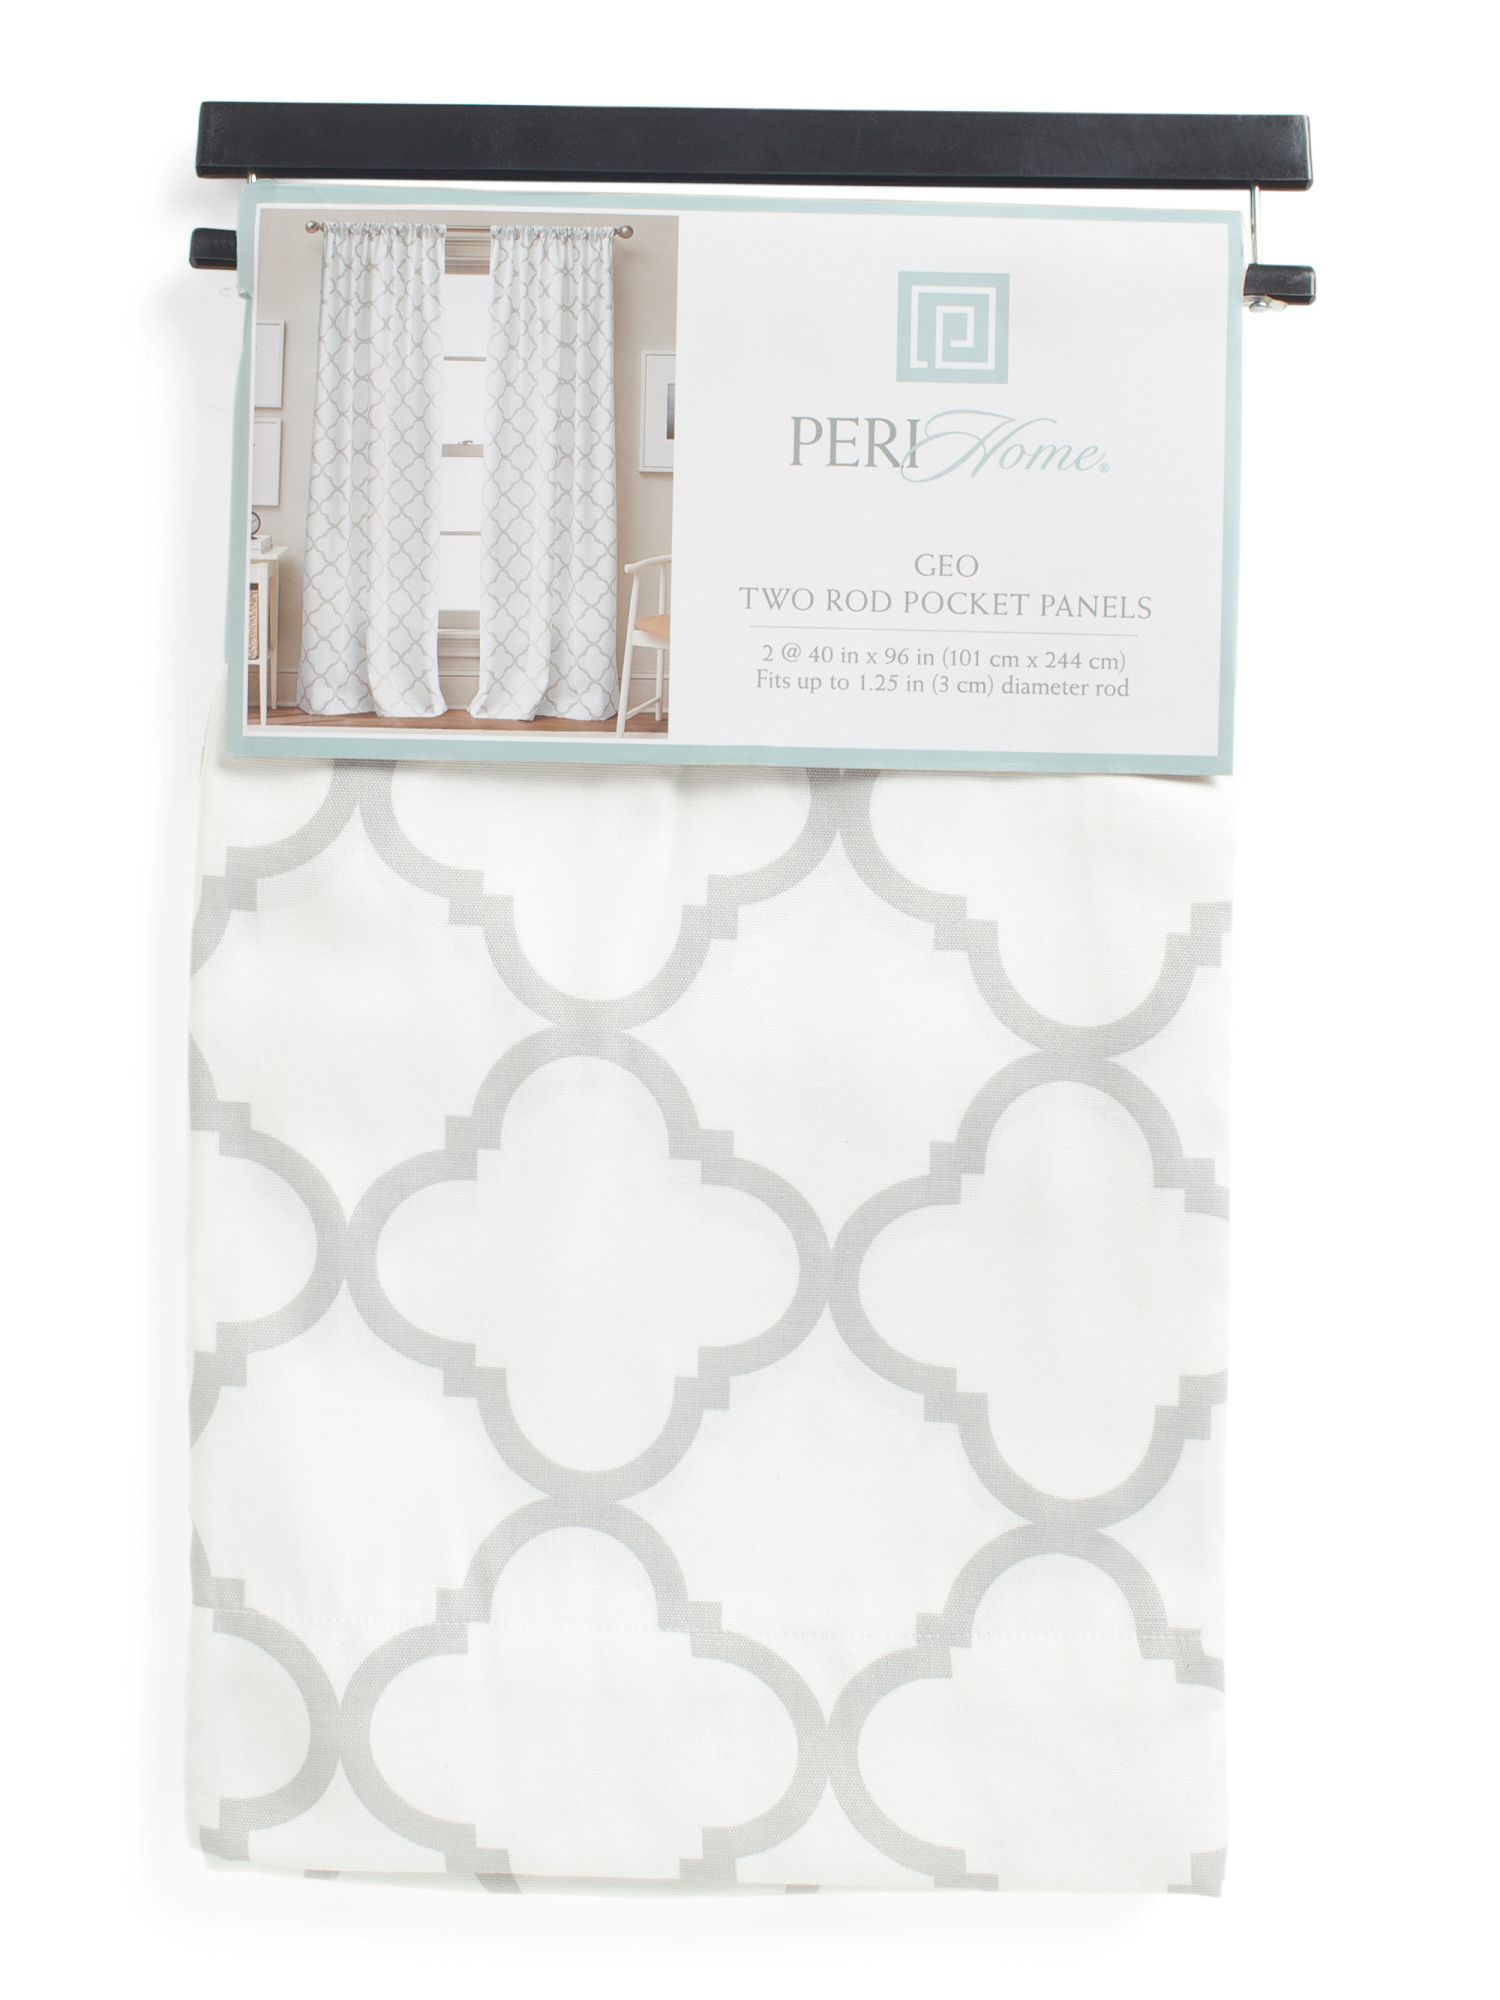 Set Of 2 40x96 Pole Top Panel Curtains Panel Curtains Curtains